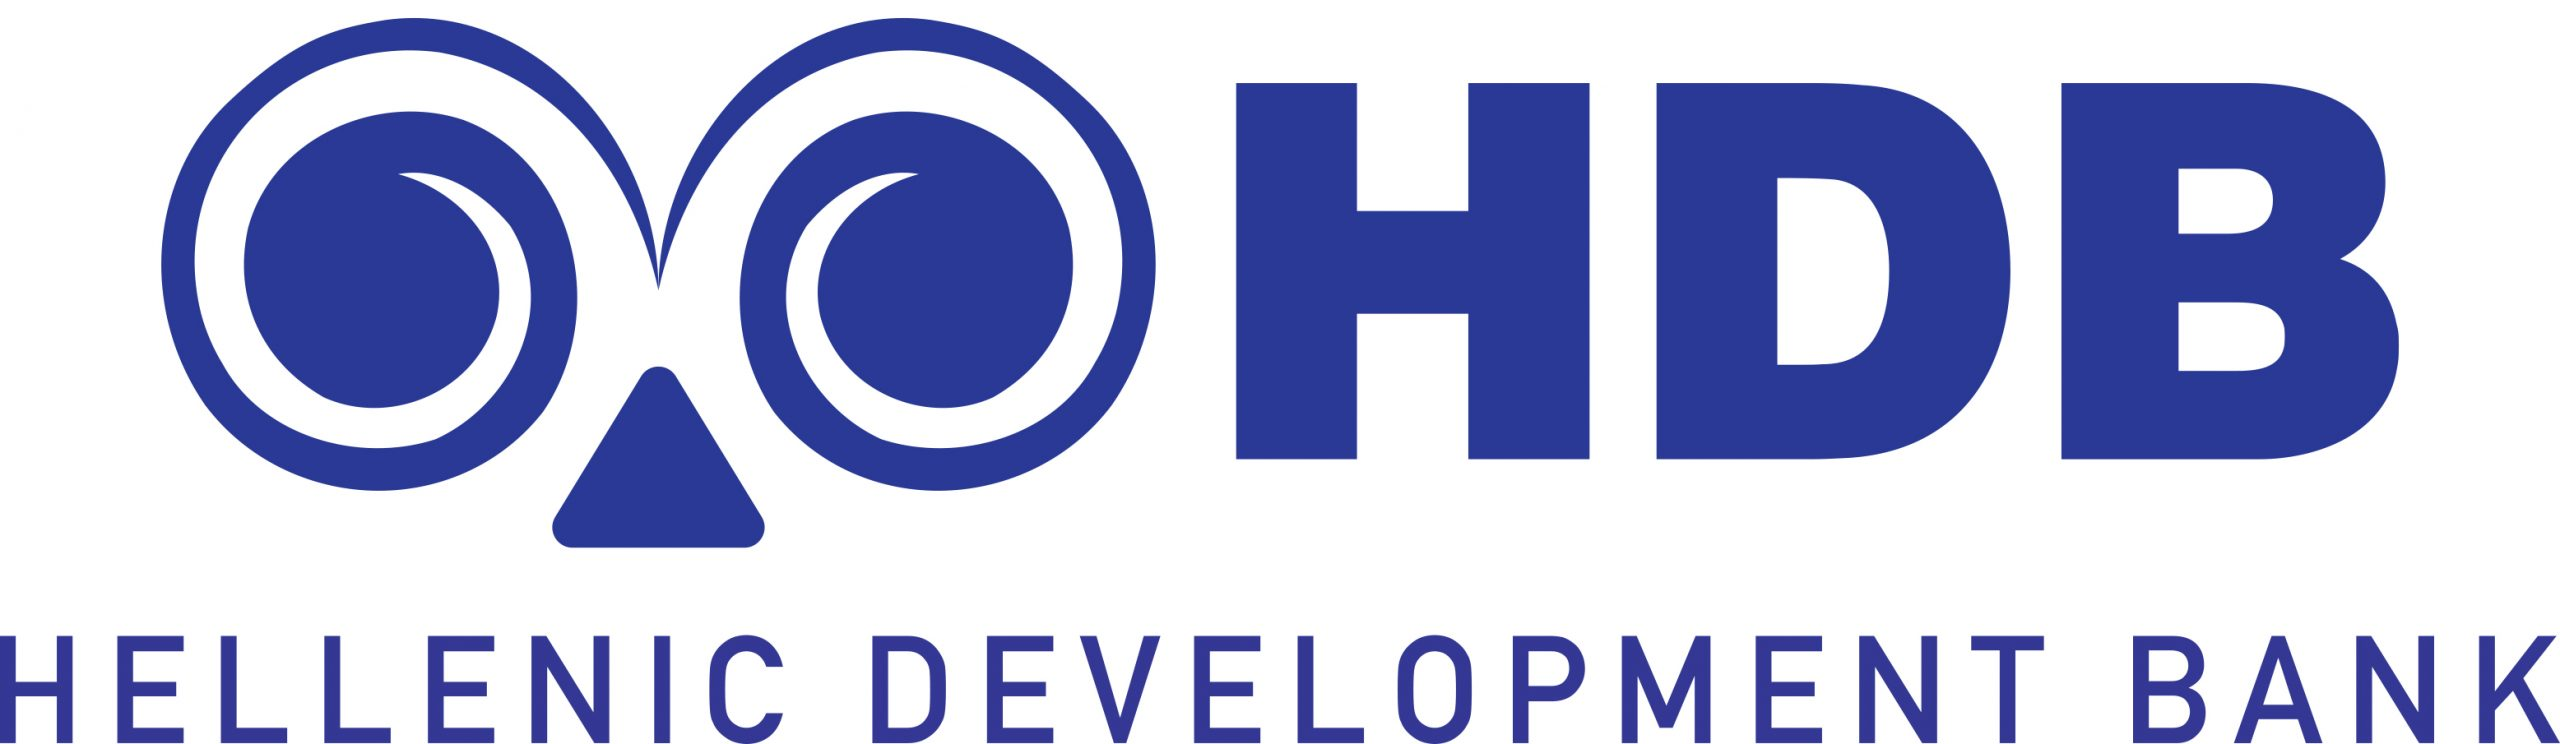 HELLENIC DEVELOPMENT BANK LOGO